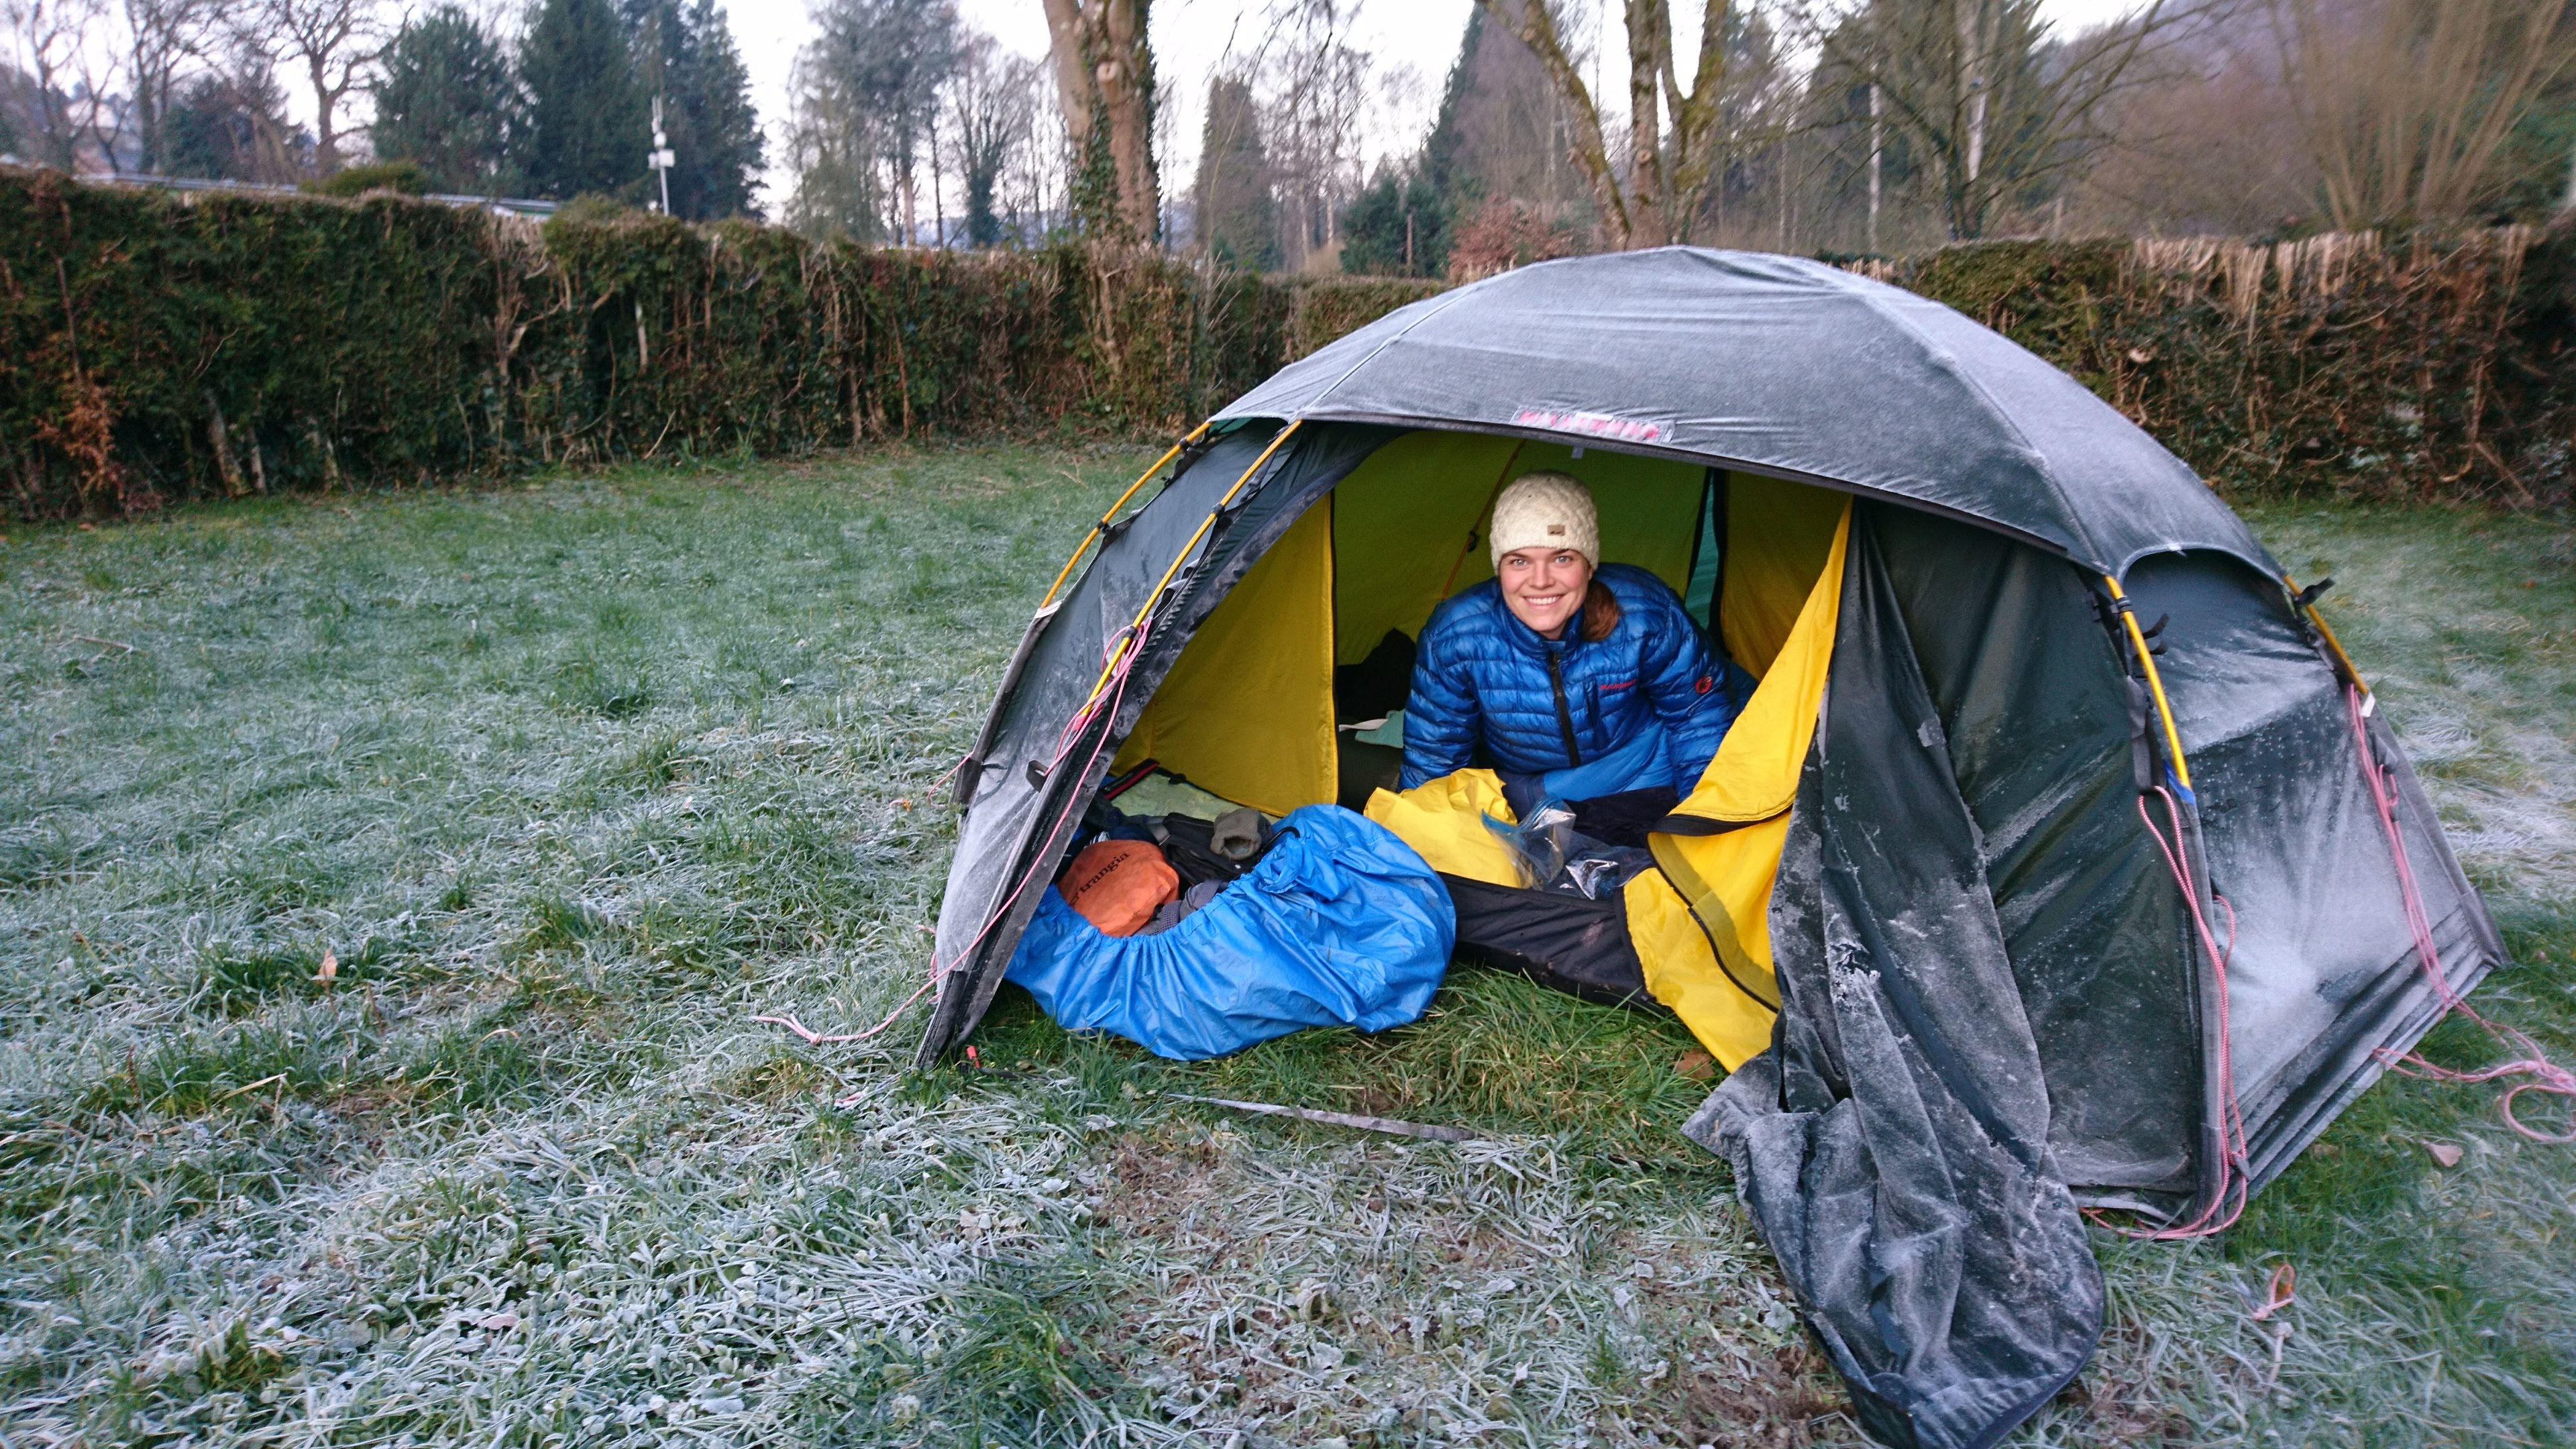 in de winter kamperen in een tent?